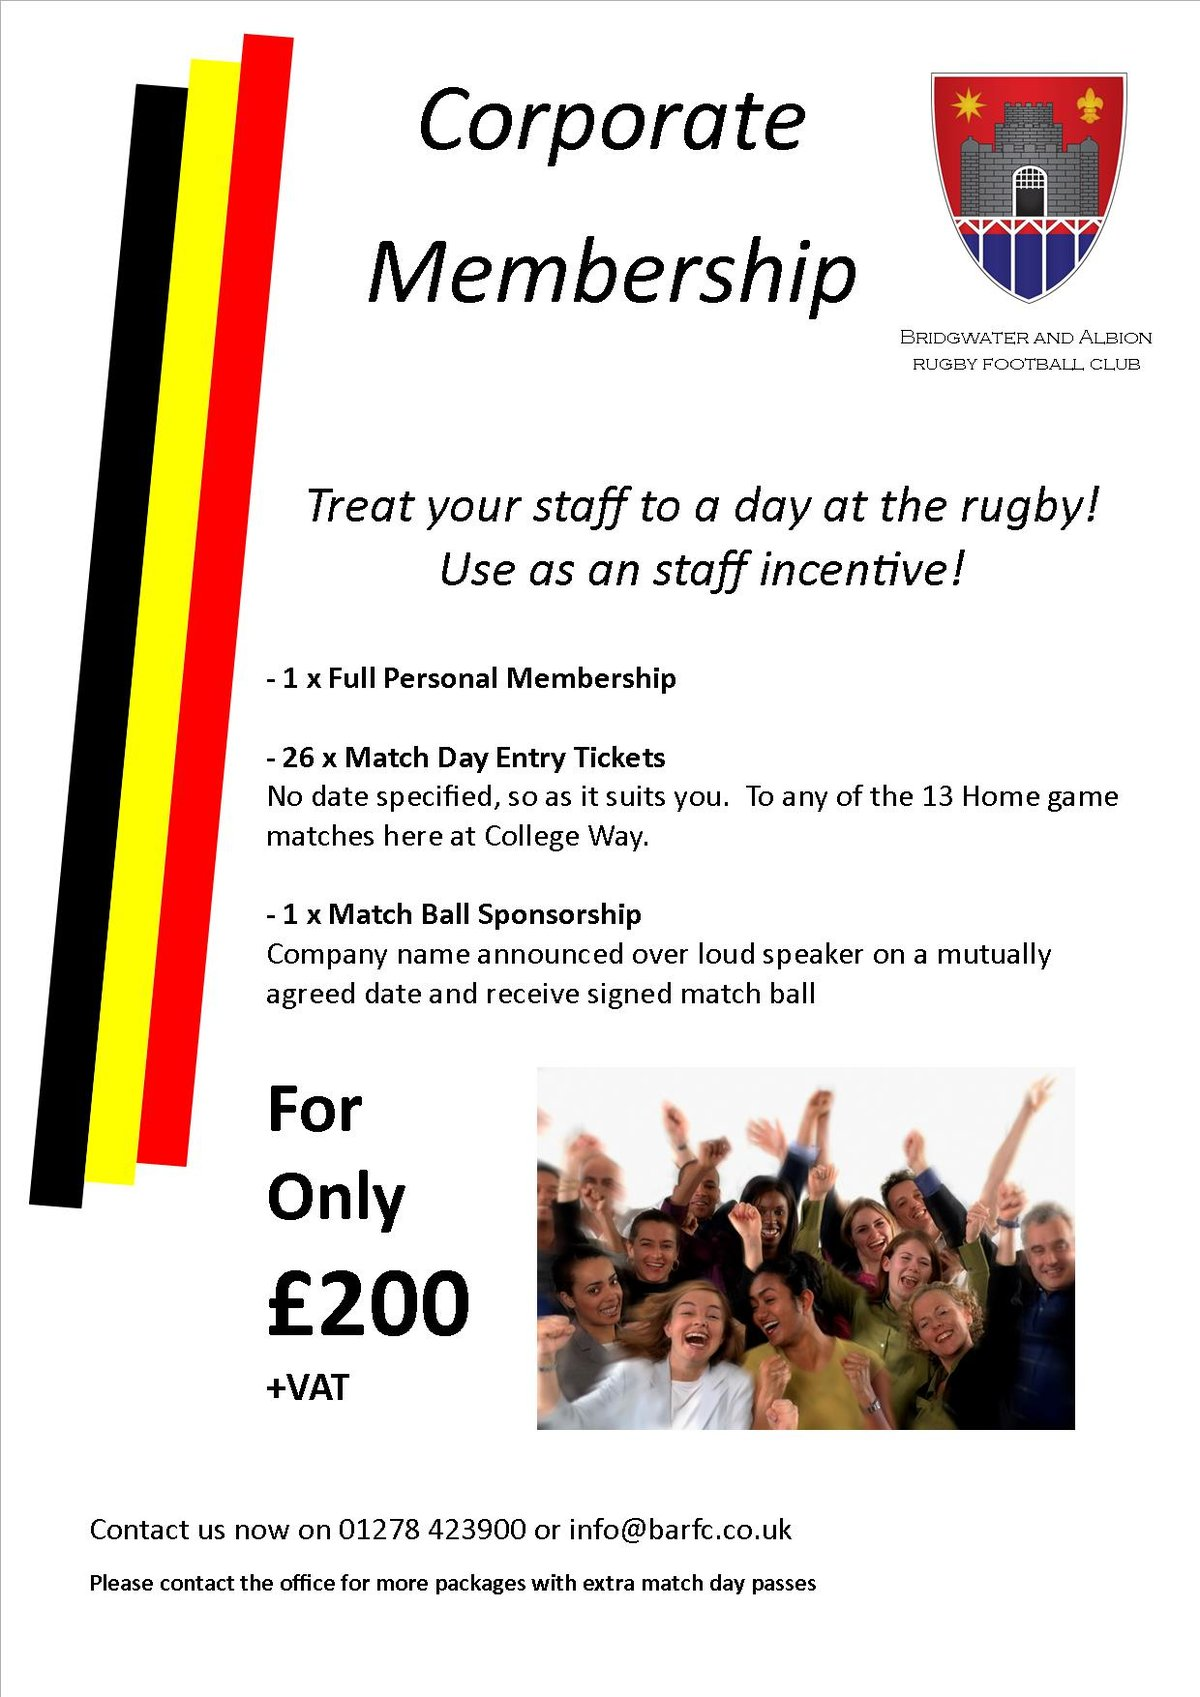 Corporate Memberhip At Bridgwater and Albion RFC